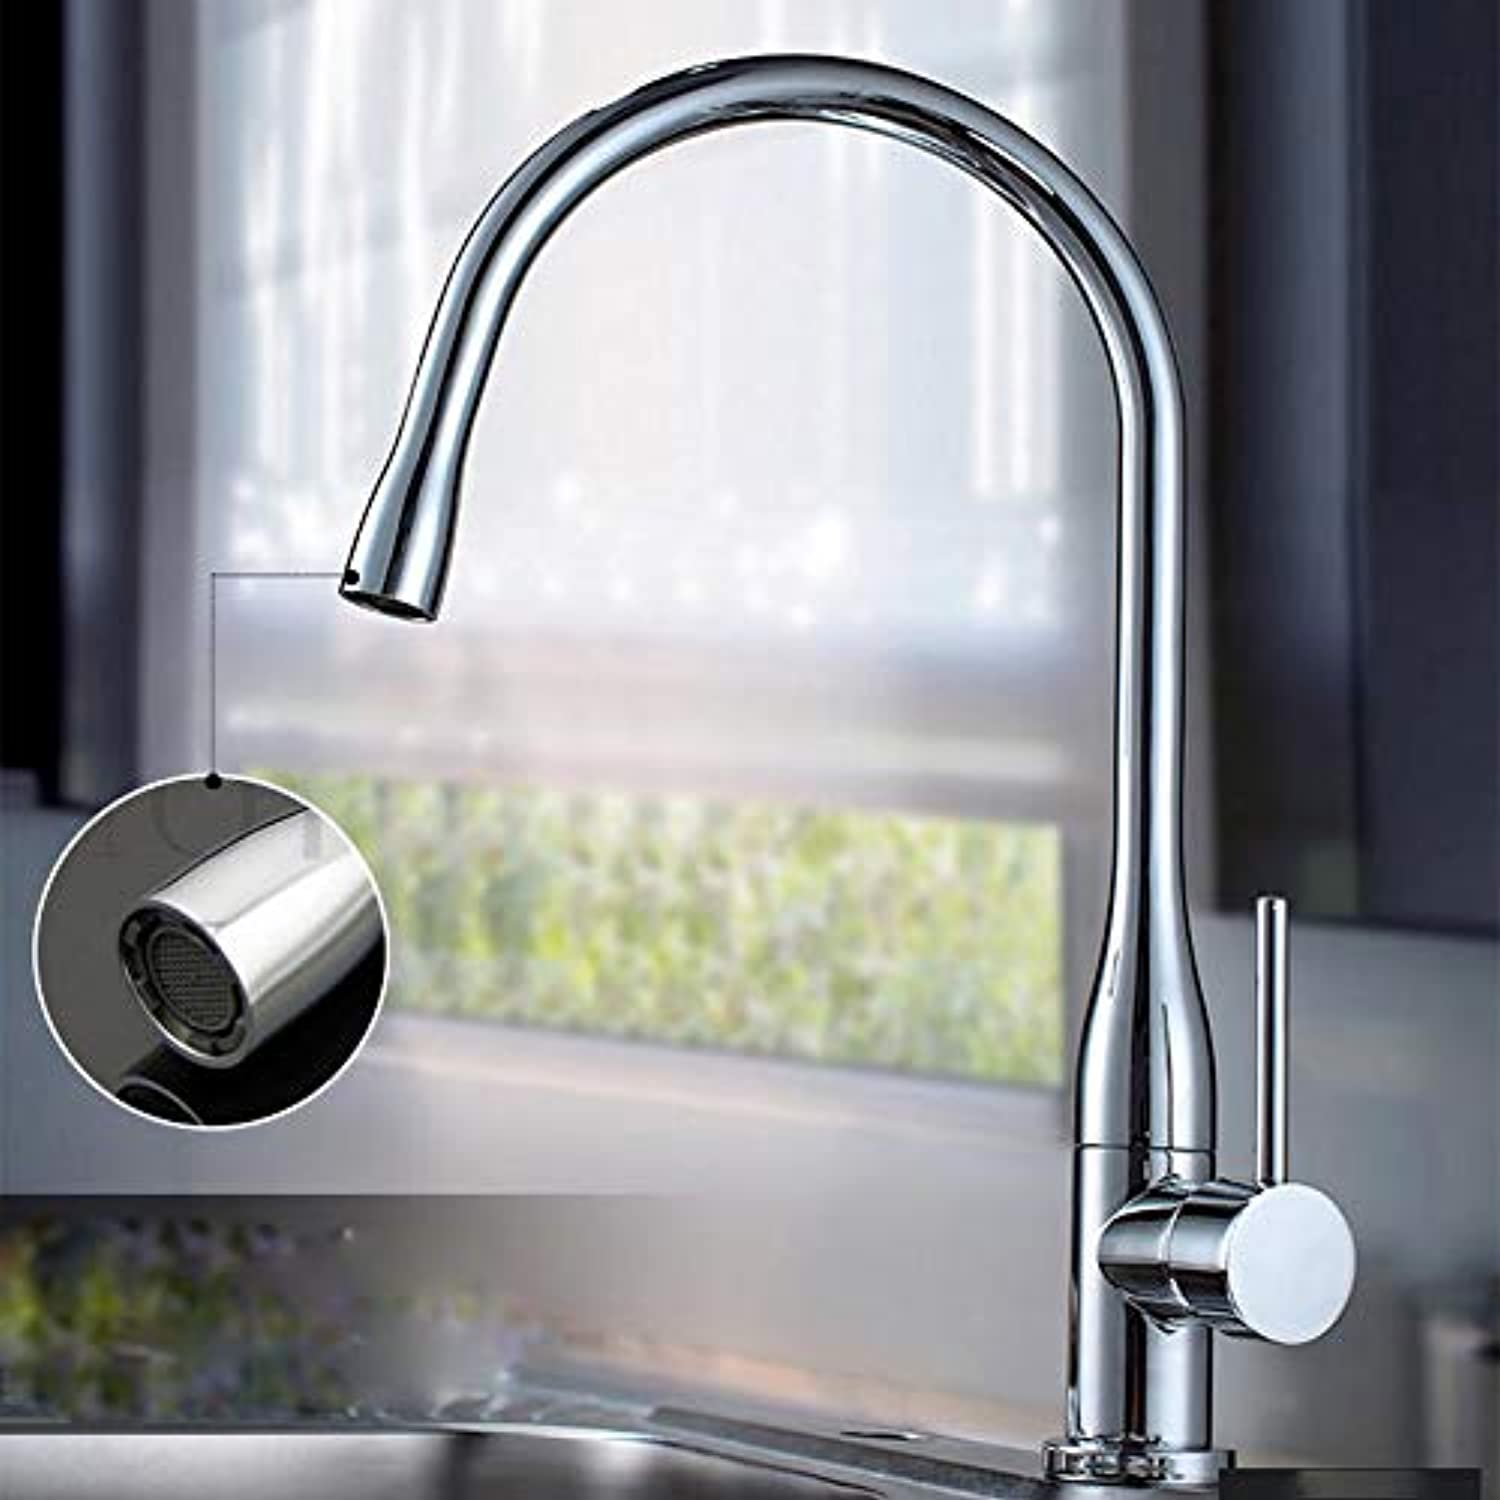 YAWEDA Chrome Brass 360 Swivel Steam Spout Kitchen Faucet redated White Painting Nicekel Brushed Kitchen Vessel Sink Mixer Tap,Chrome Brass